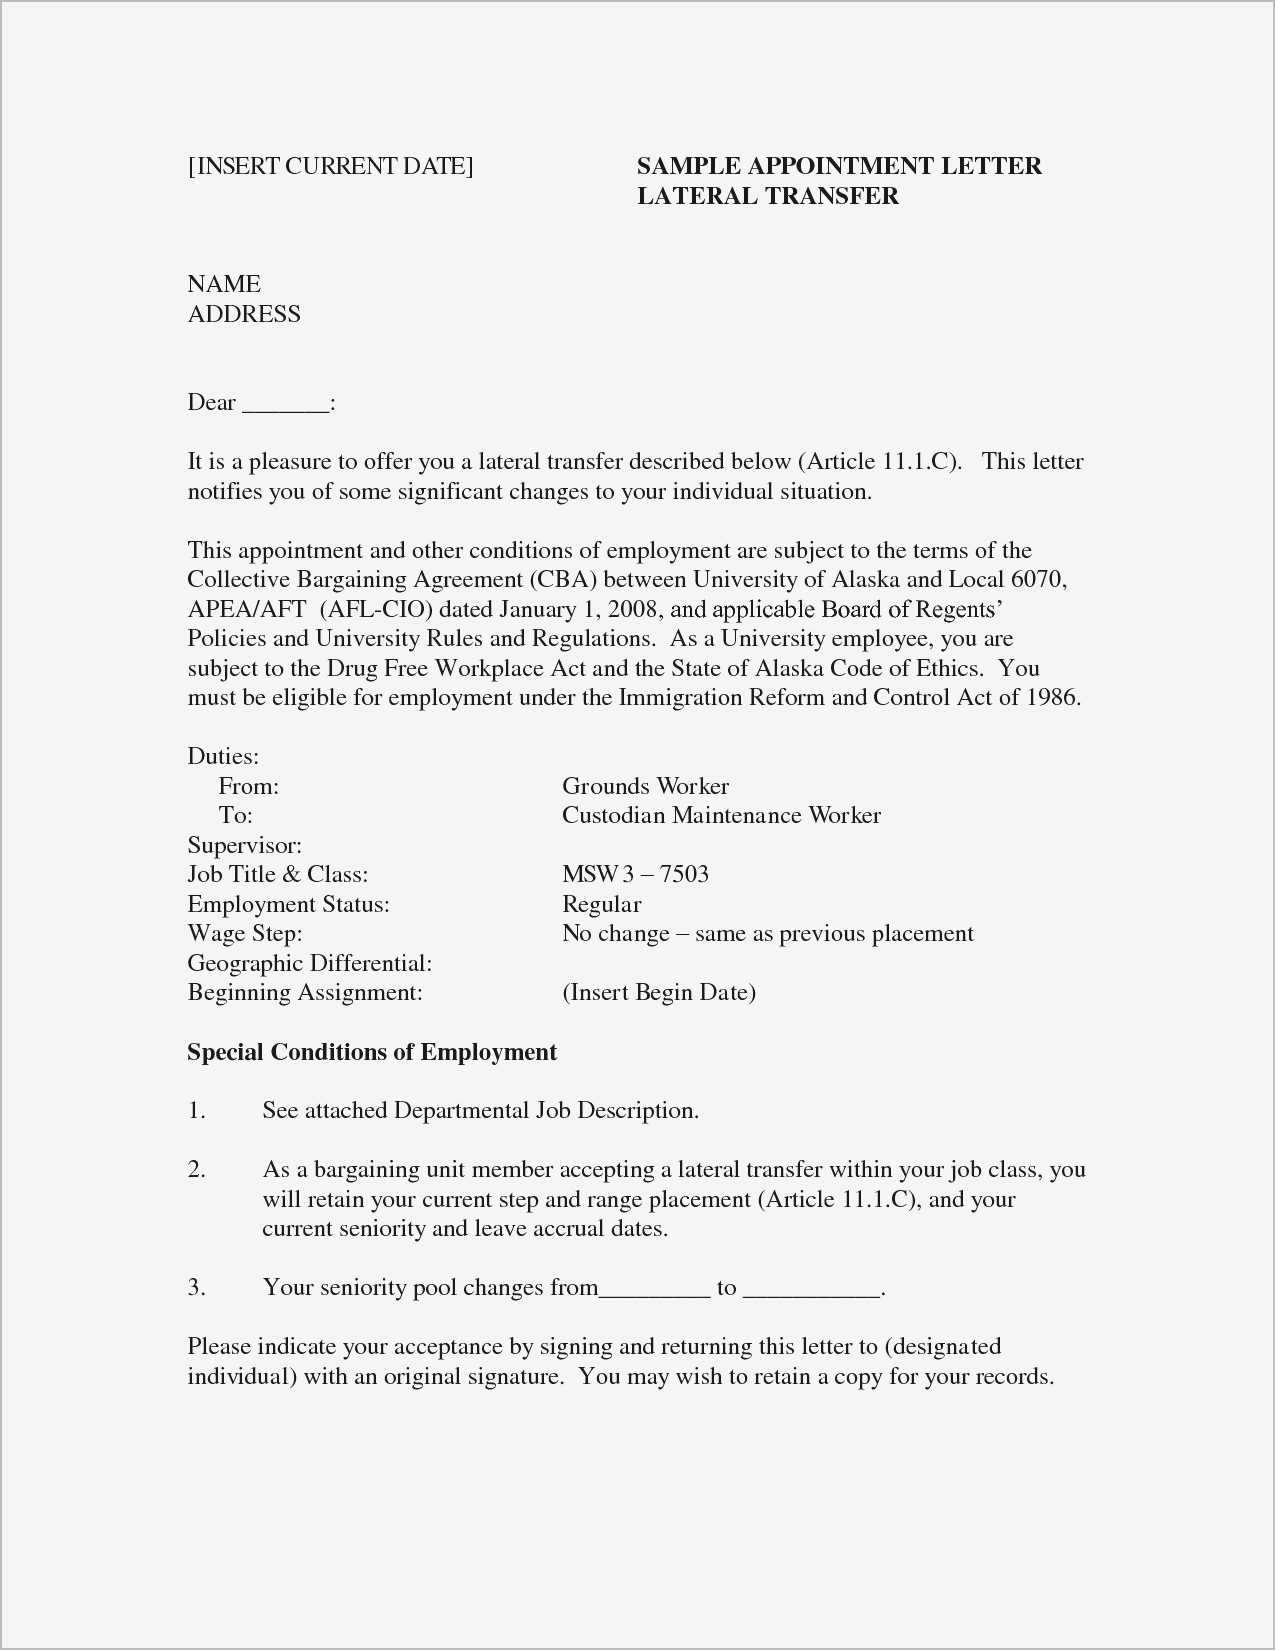 Public Record Removal Letter Template - Graphic Design Cover Letter Examples Samples